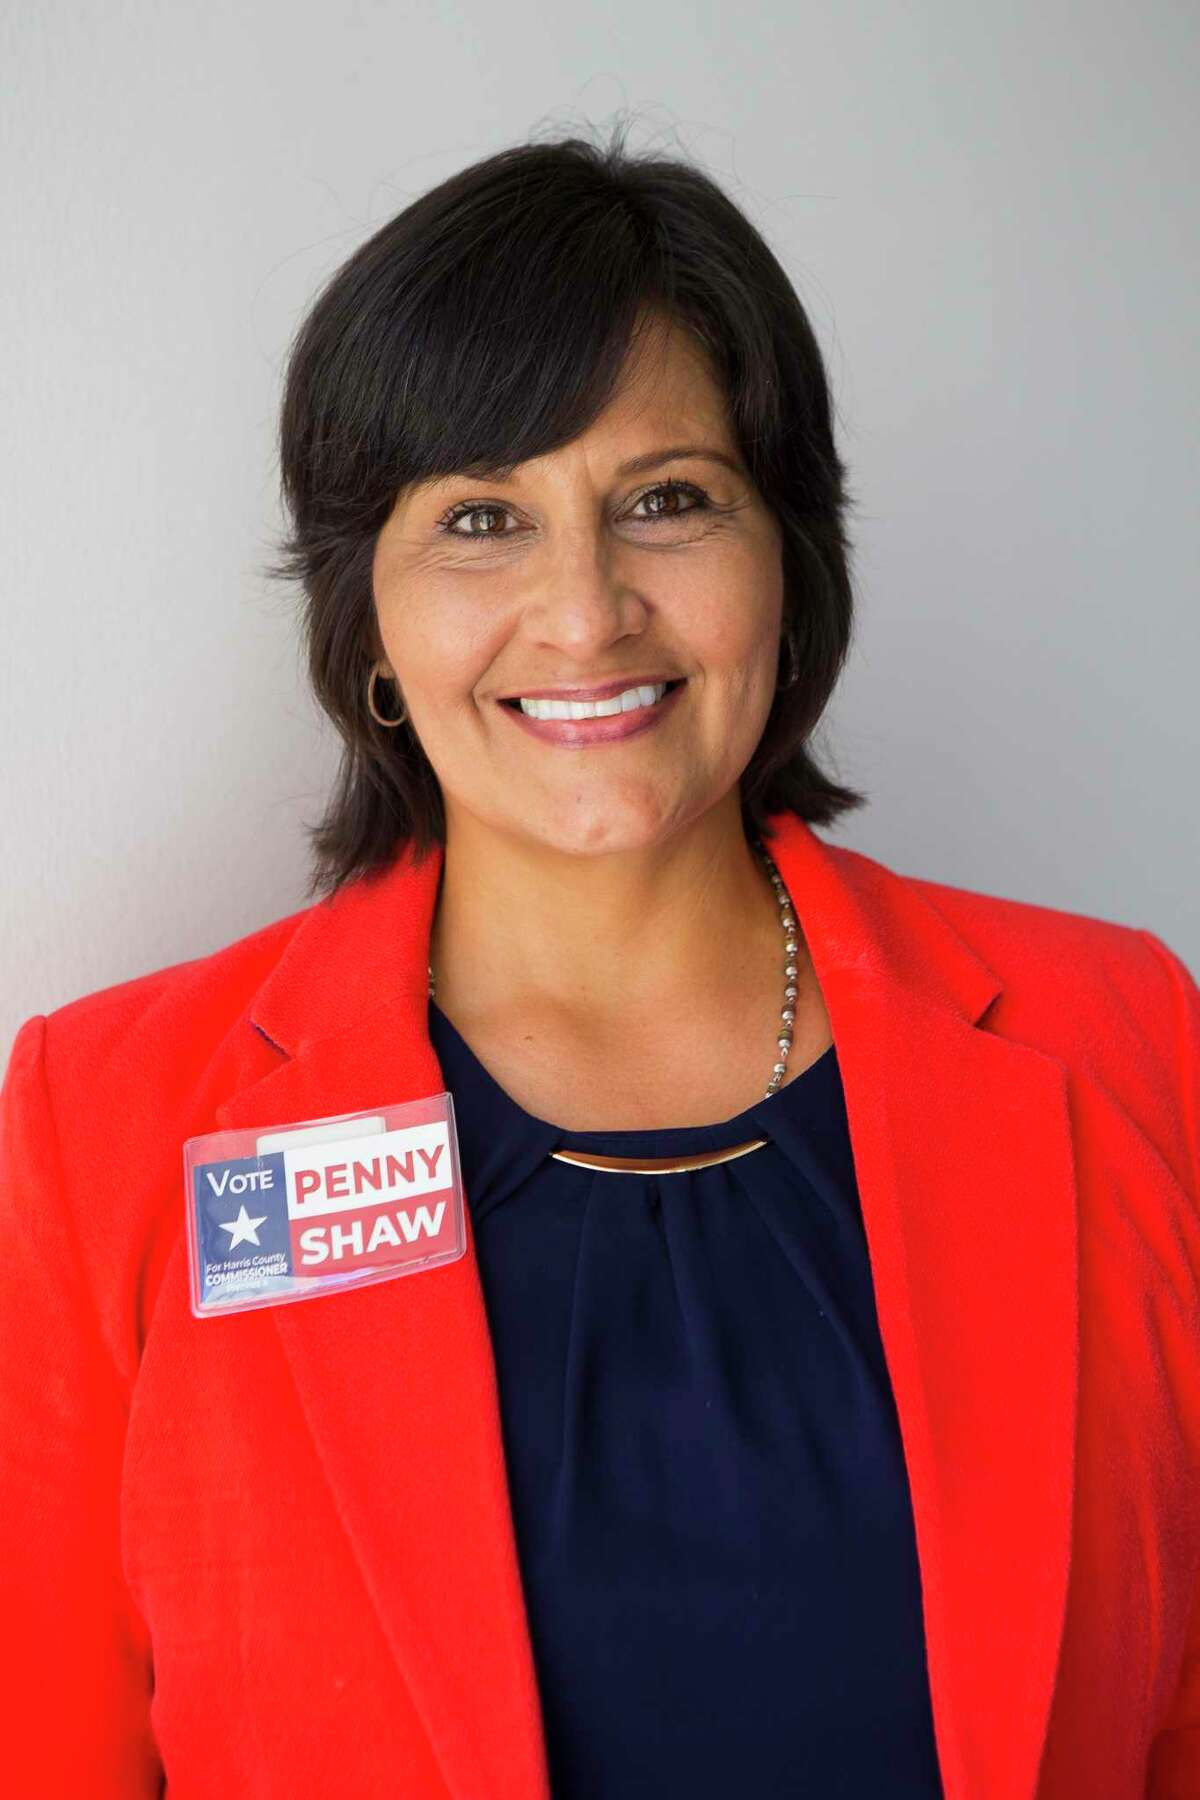 County Commissioner candidate Penny Shaw, Wednesday, Oct. 3, 2018 in Houston.